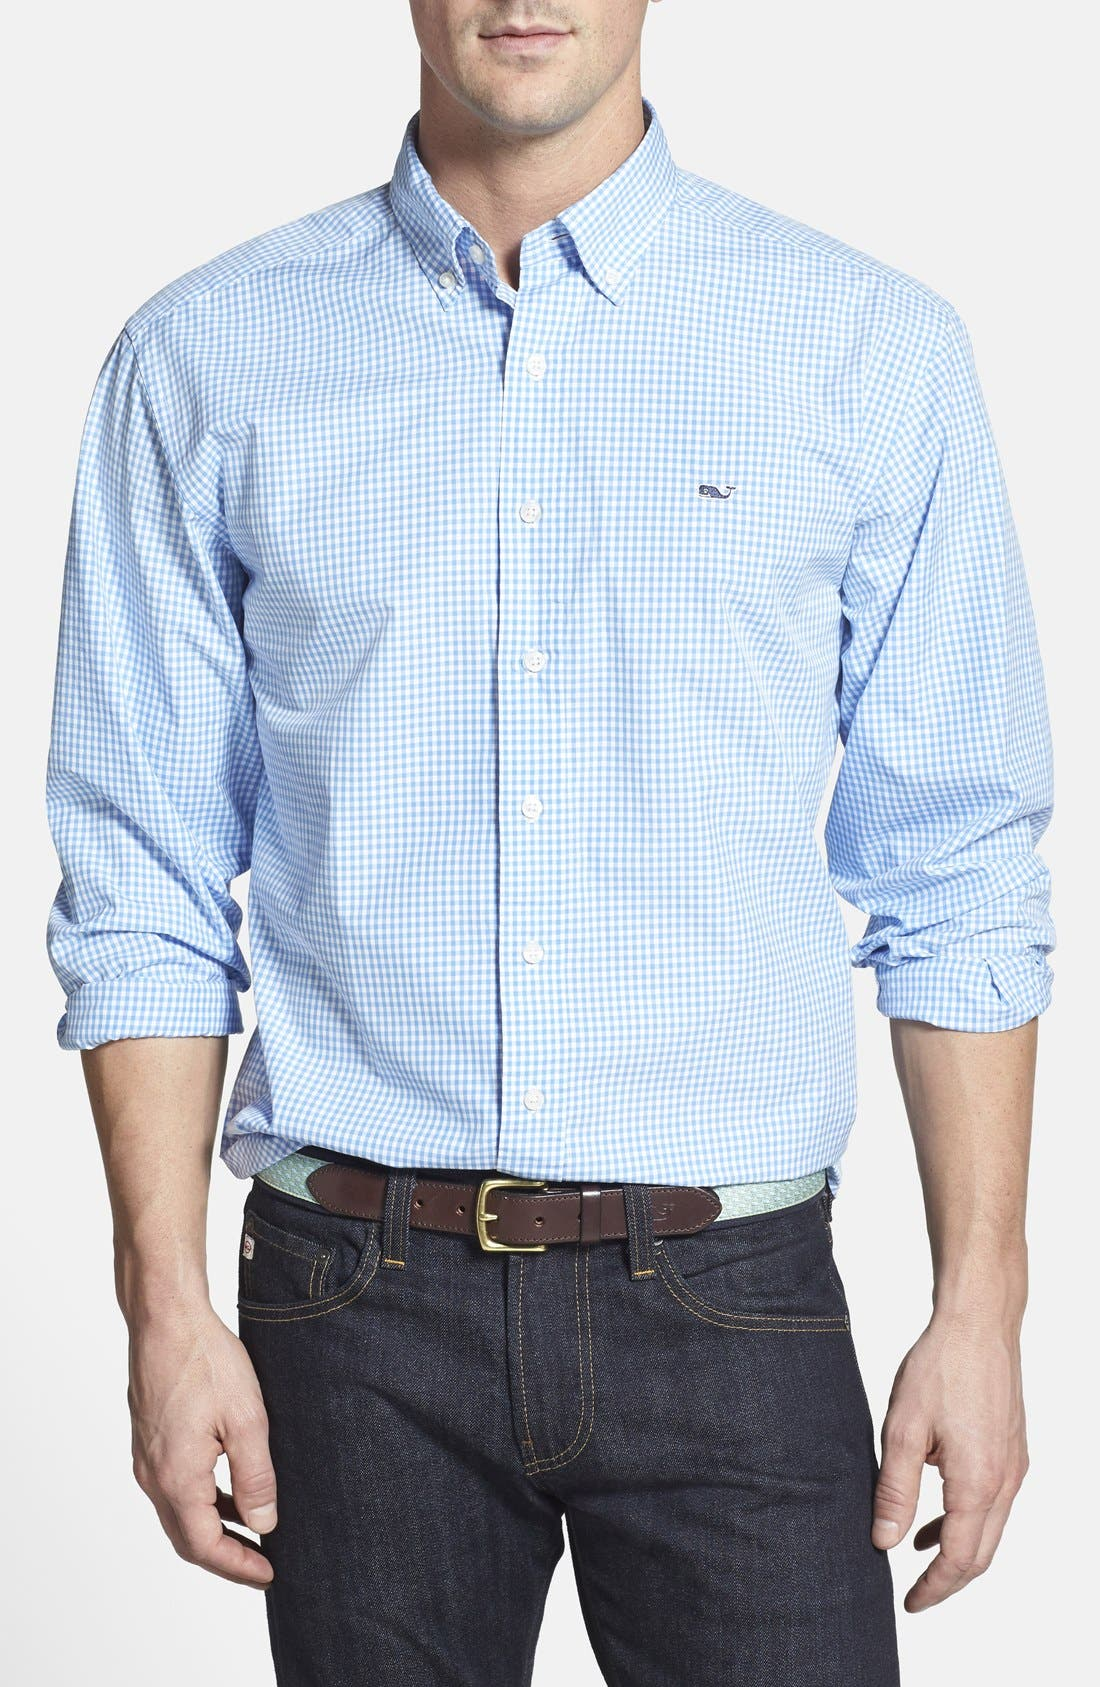 Alternate Image 1 Selected - Vineyard Vines 'Whale' Classic Fit Check Poplin Sport Shirt